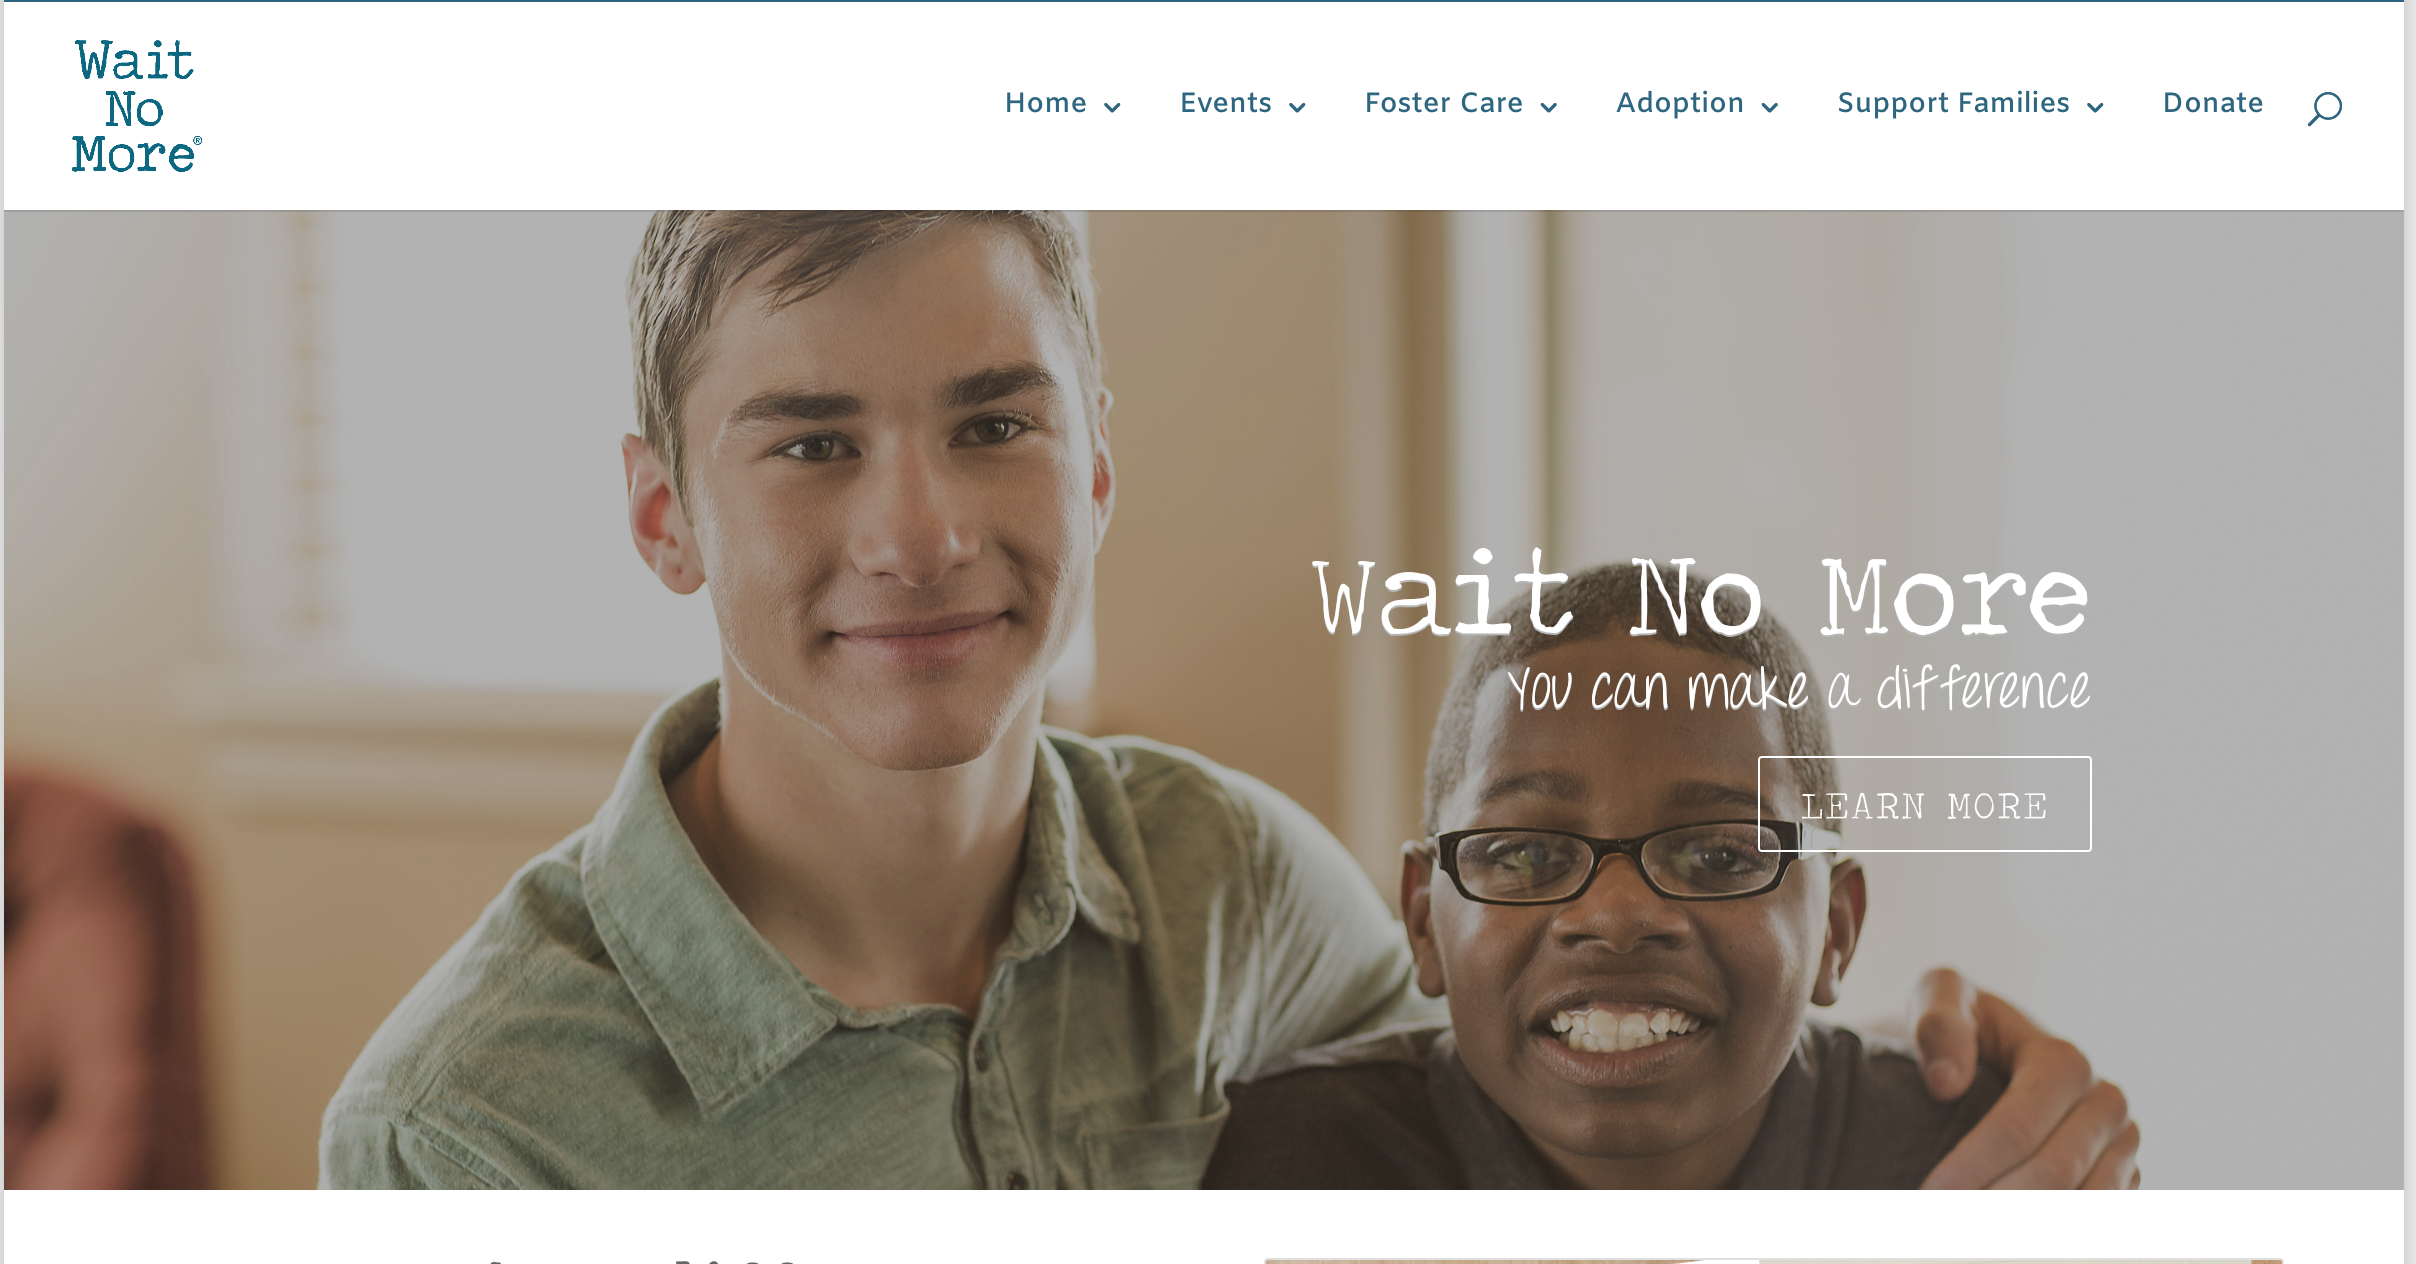 WAIT NO MORE  - What We DOOur initiative focuses on two main areas: Wait No More events, which educate and empower families to help waiting kids in foster carePost-placement resources for foster and adoptive families